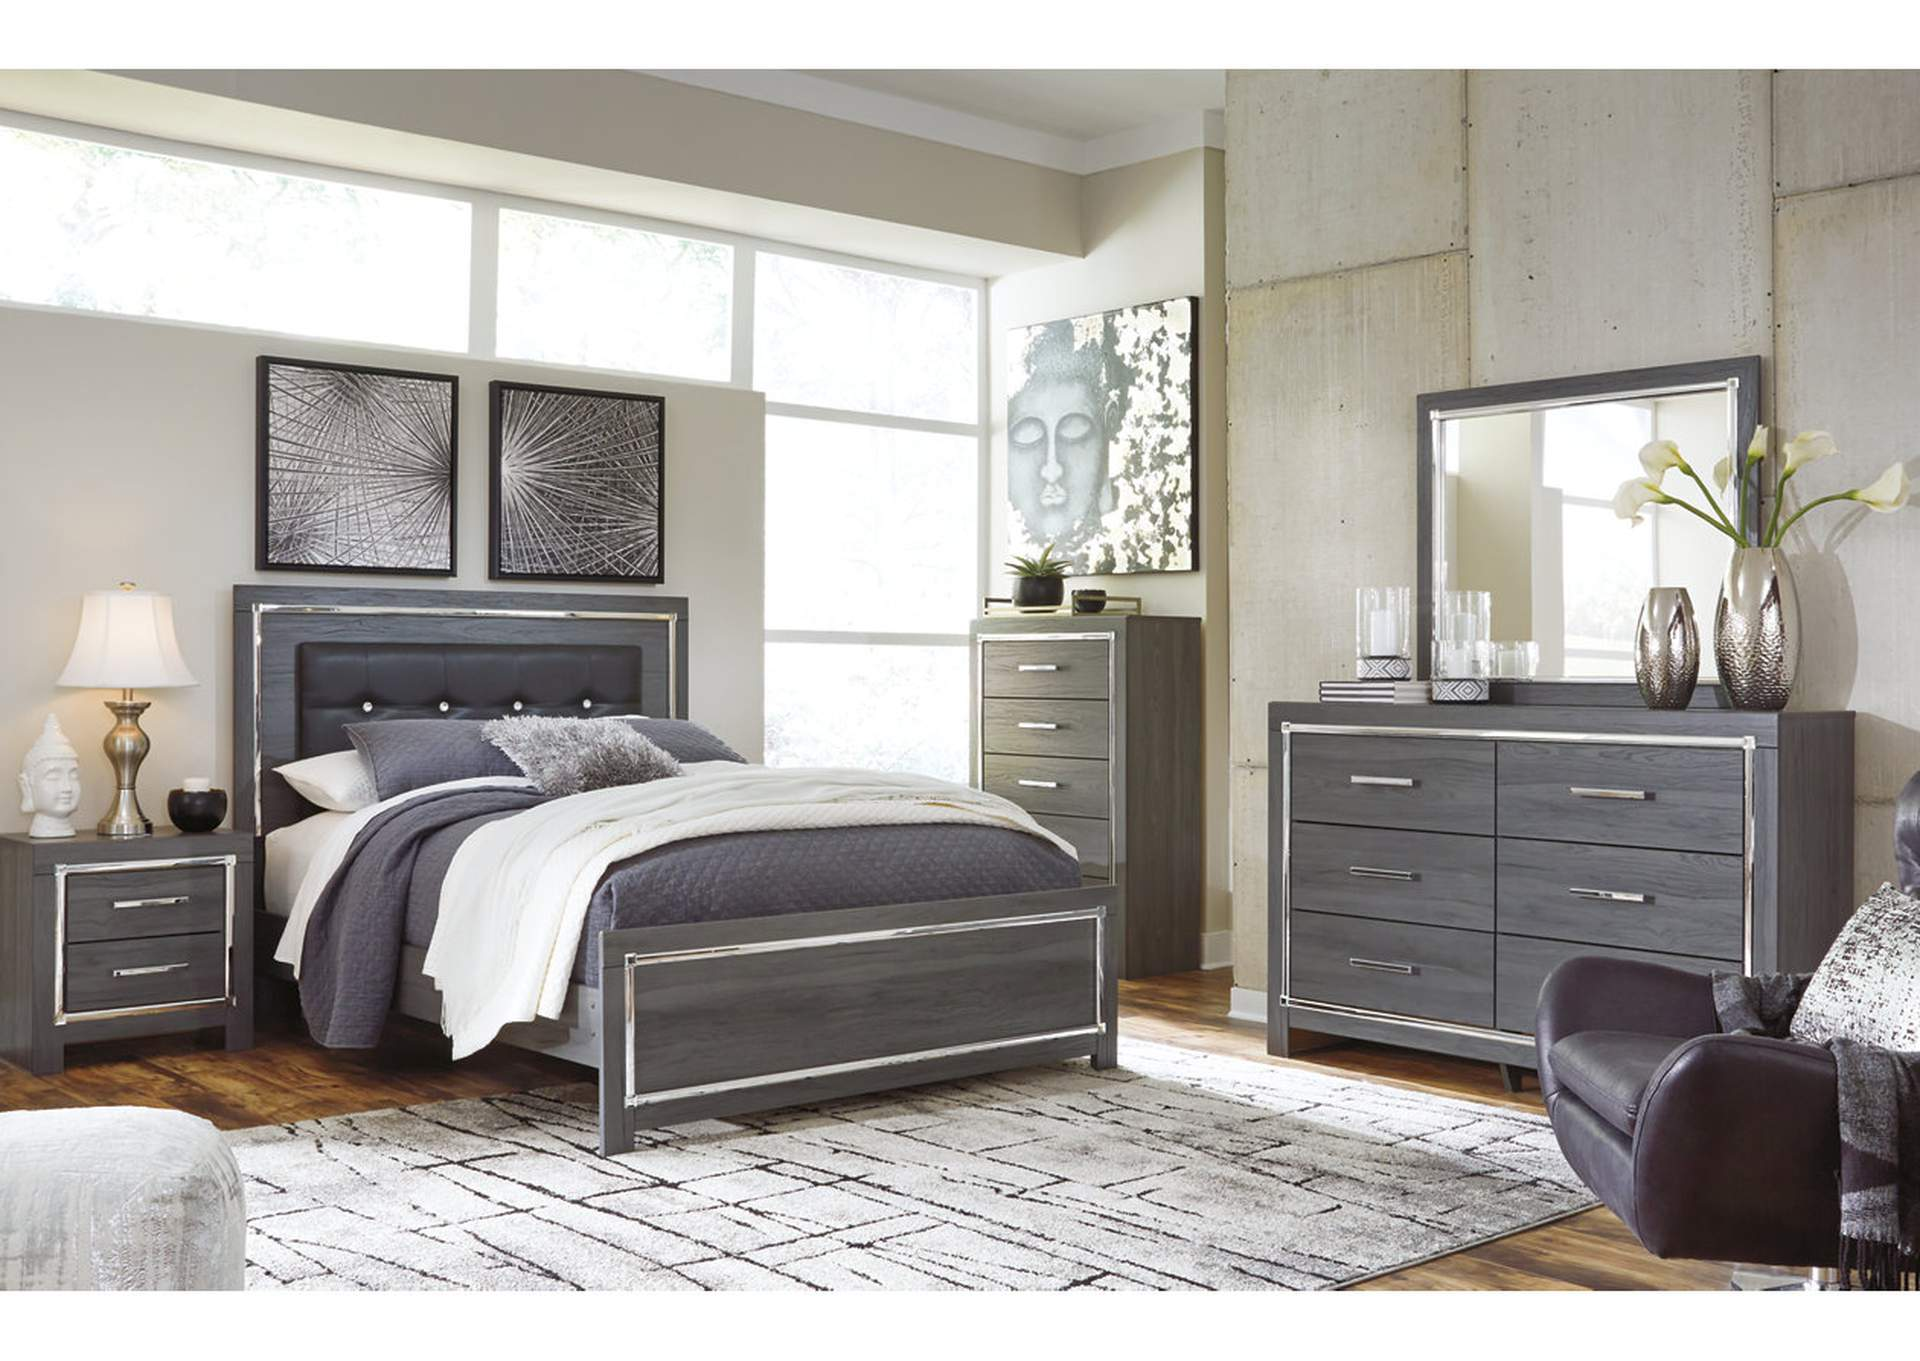 Lodanna Gray King Panel Bed w/Dresser & Mirror,Signature Design By Ashley